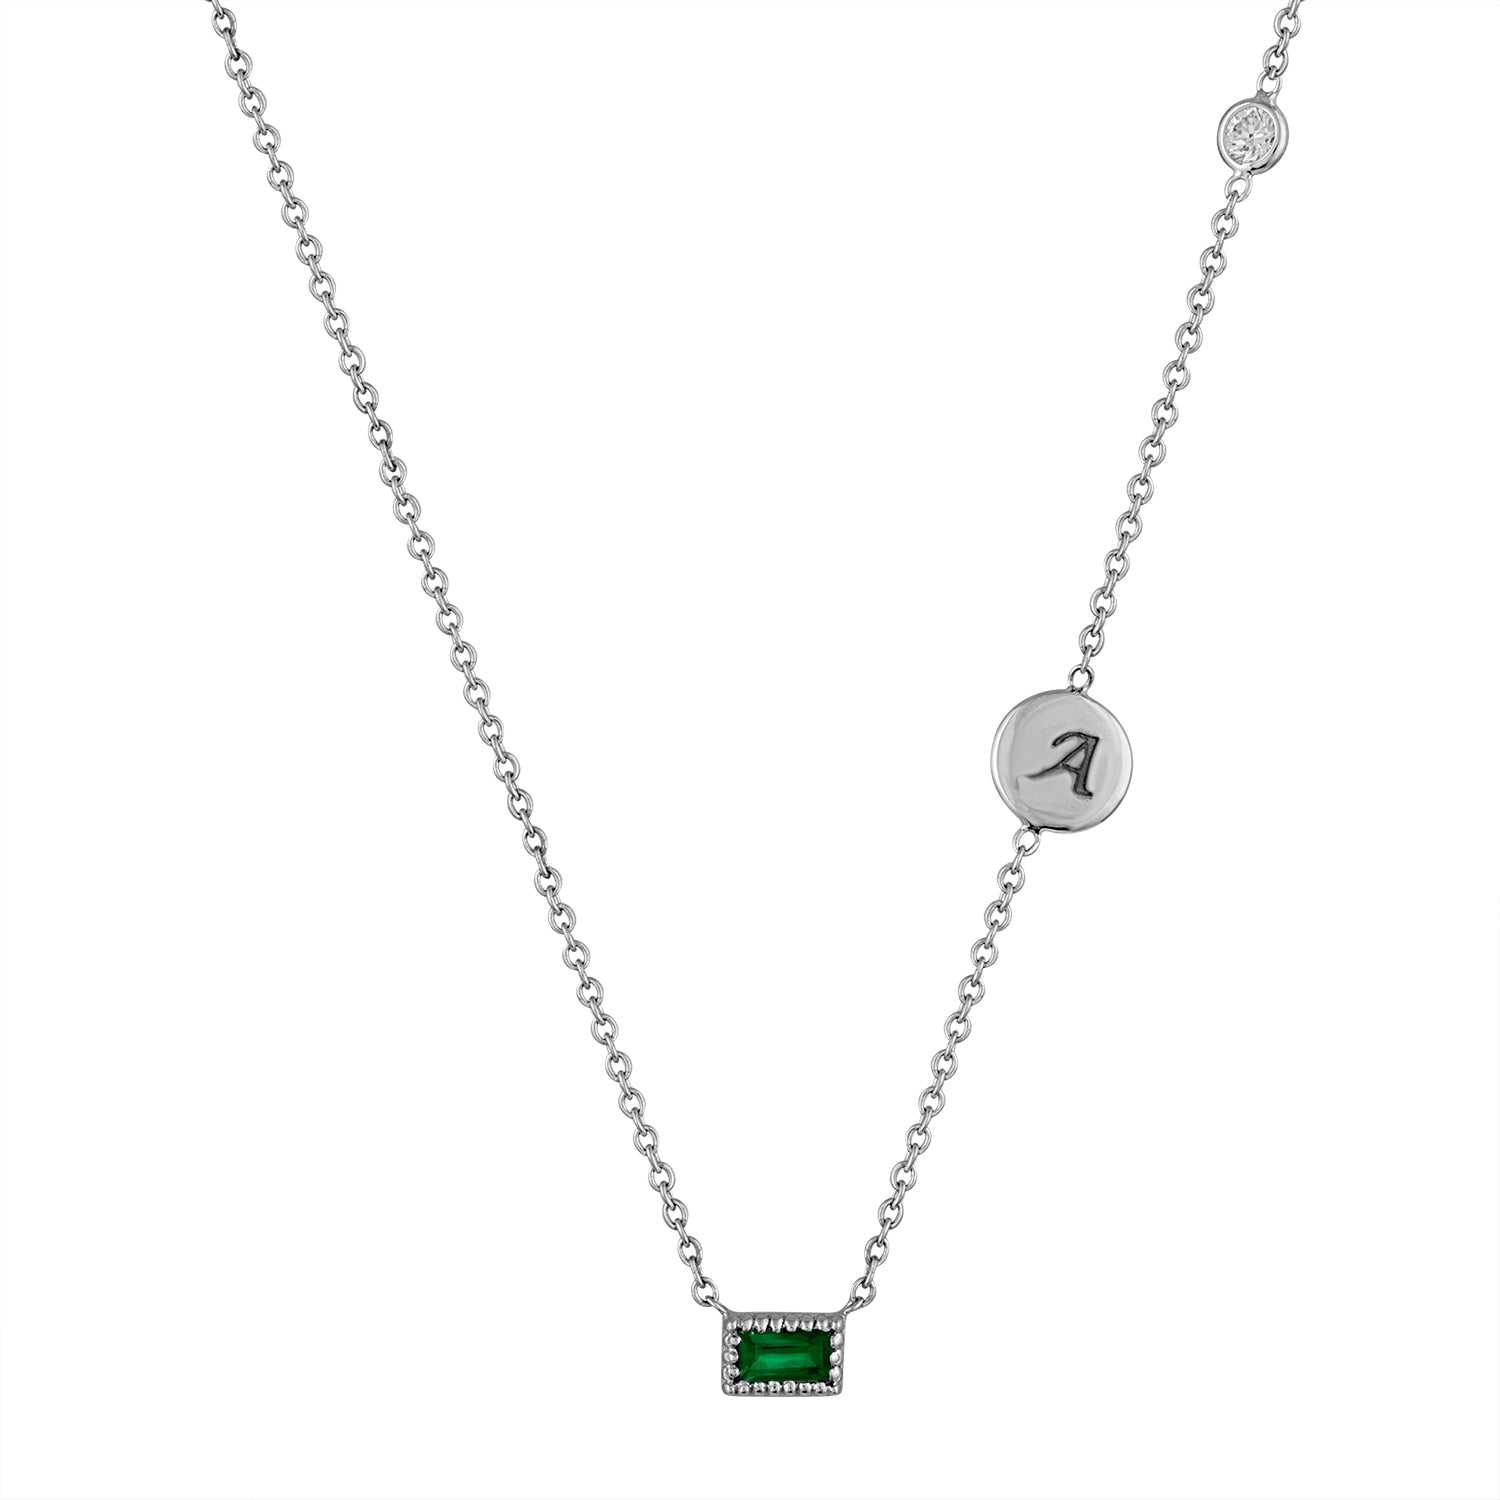 Small single emerald baguette necklace with initial disc and floating diamond